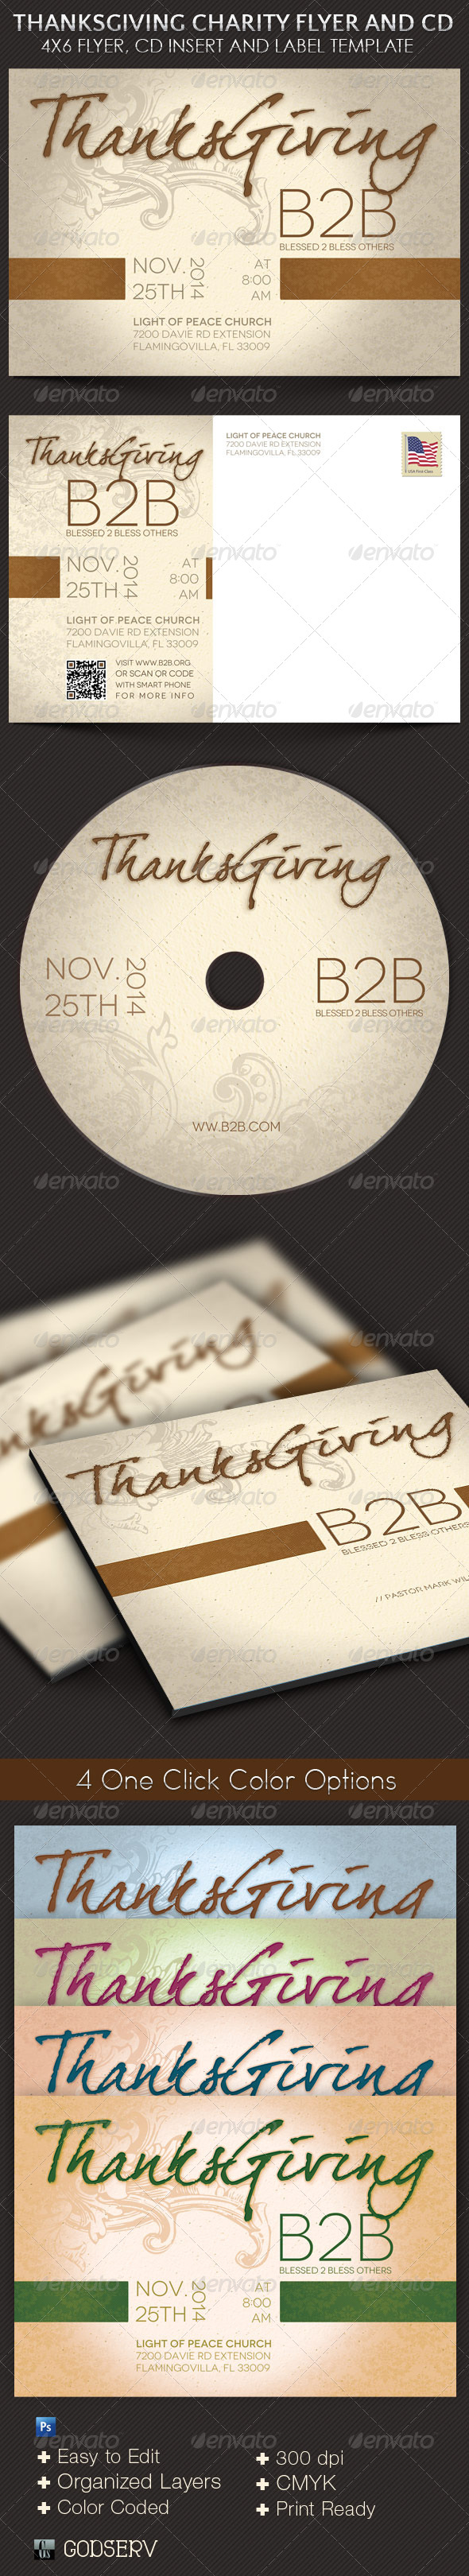 Thanksgiving Charity Flyer CD Template